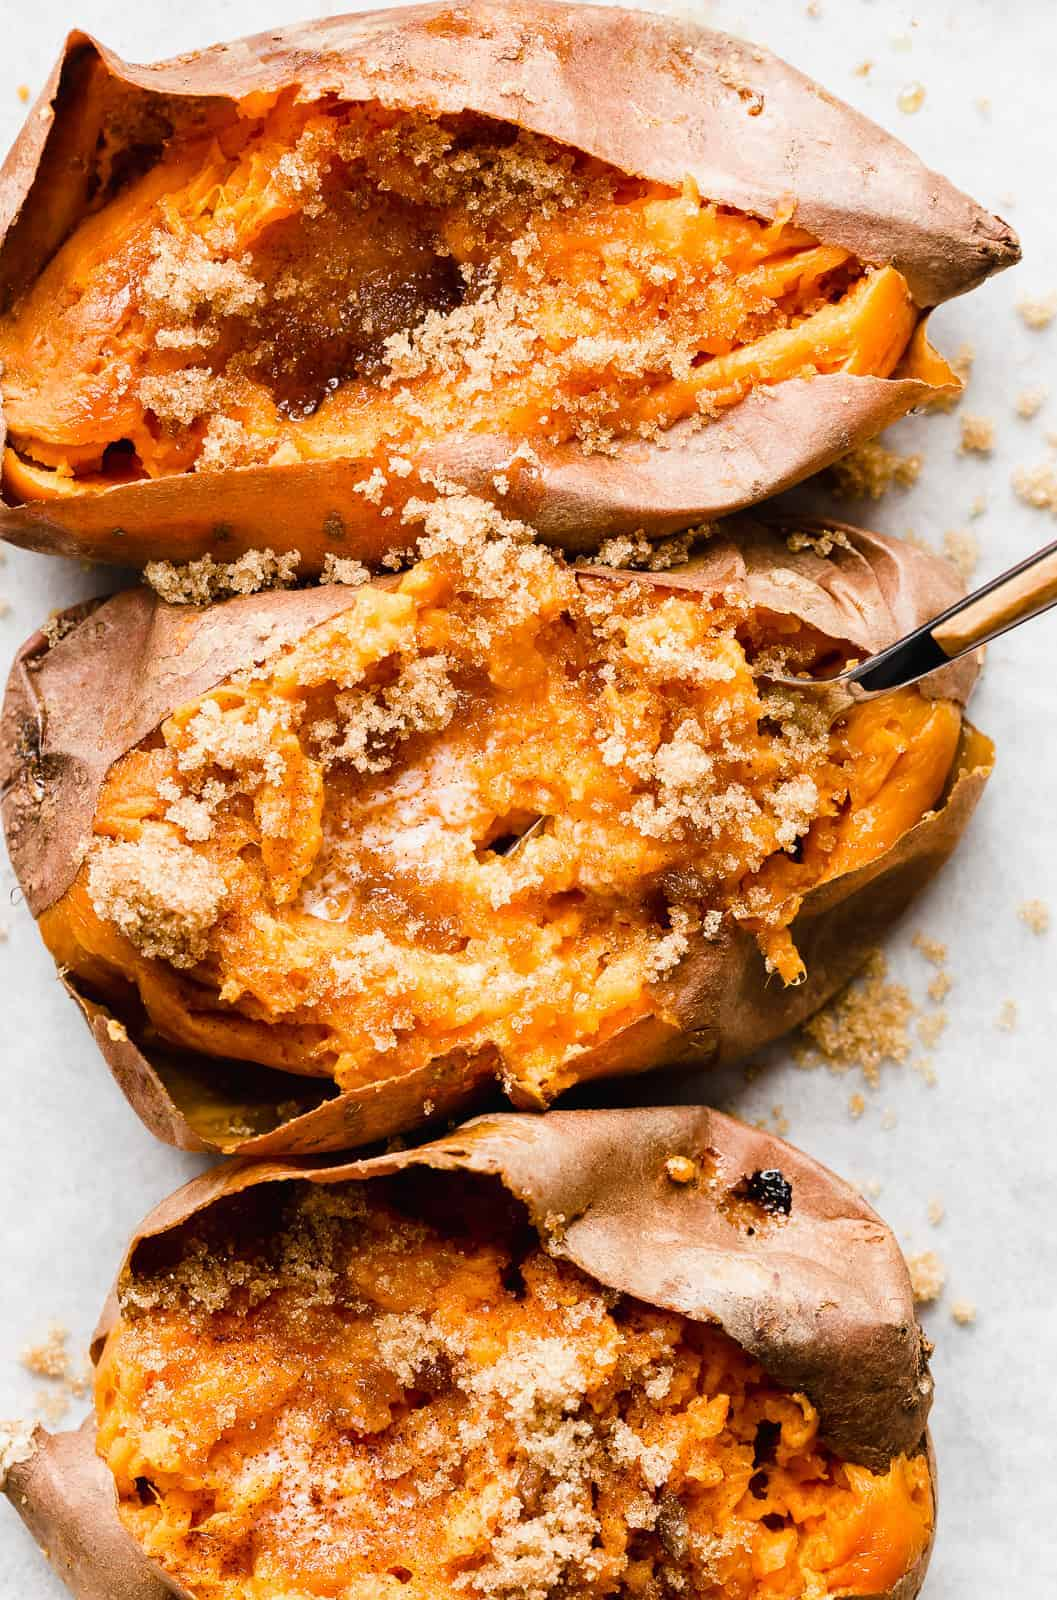 A fork scooping up some baked sweet potato.